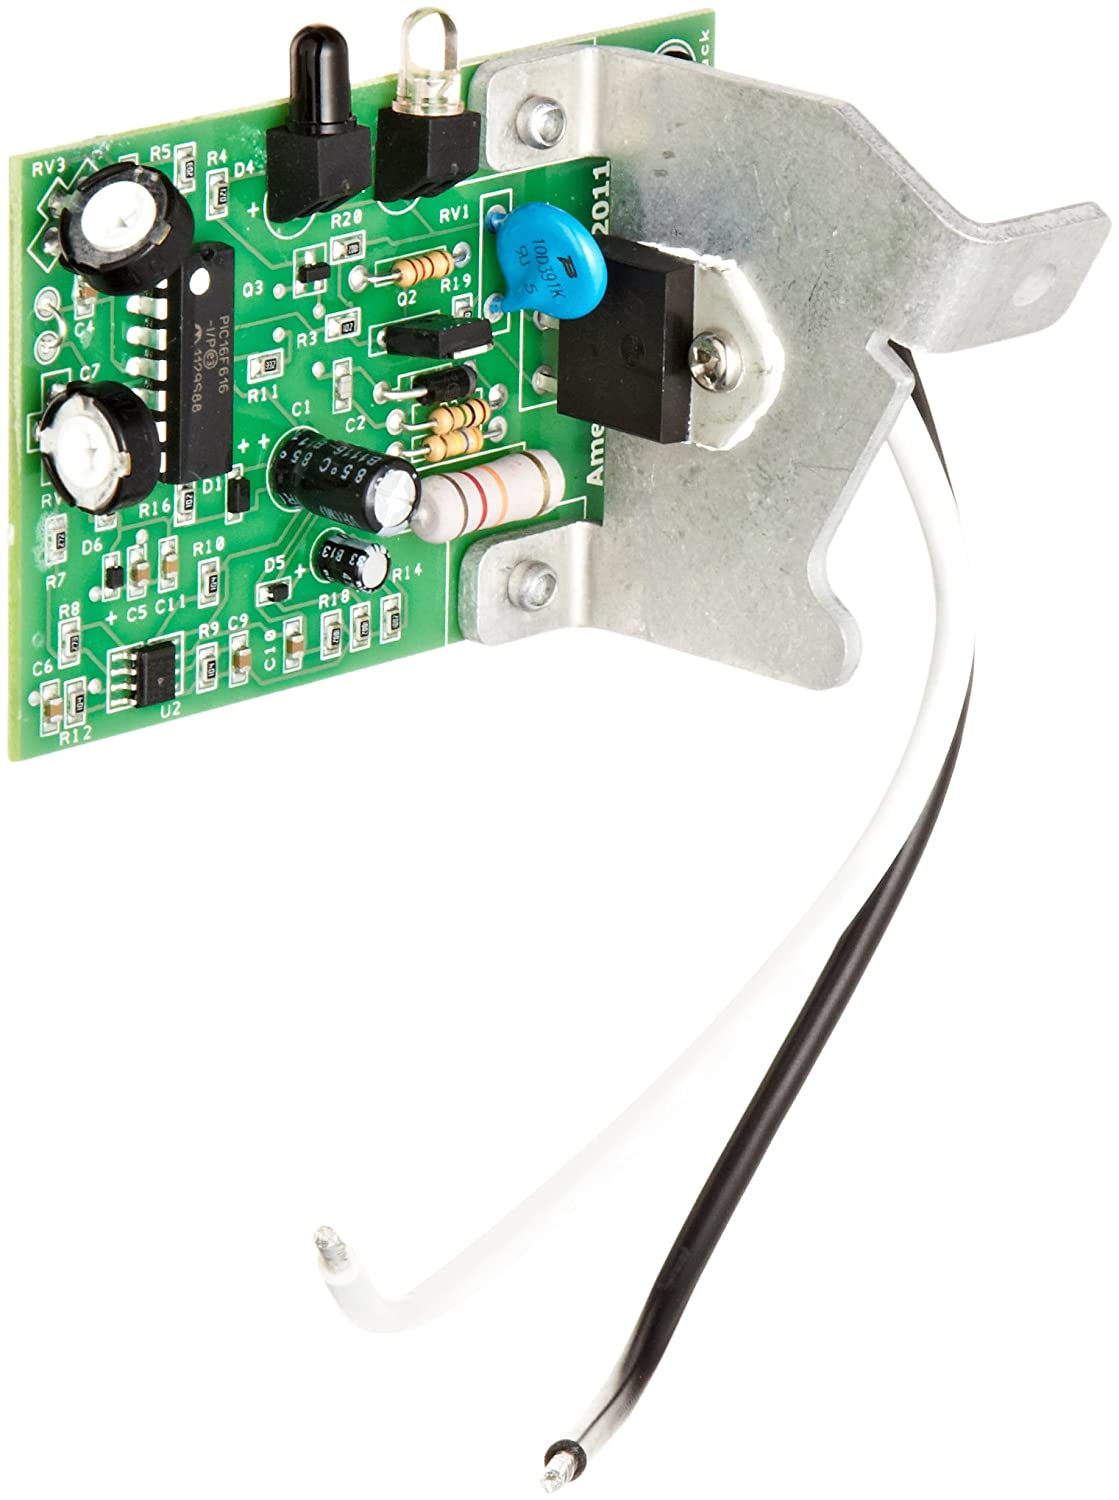 Image of Hand Dryers American Dryer SM239 Replacement Smart Sensor, 115-230V, for GXT9 and EXT7 Model Hand Dryers